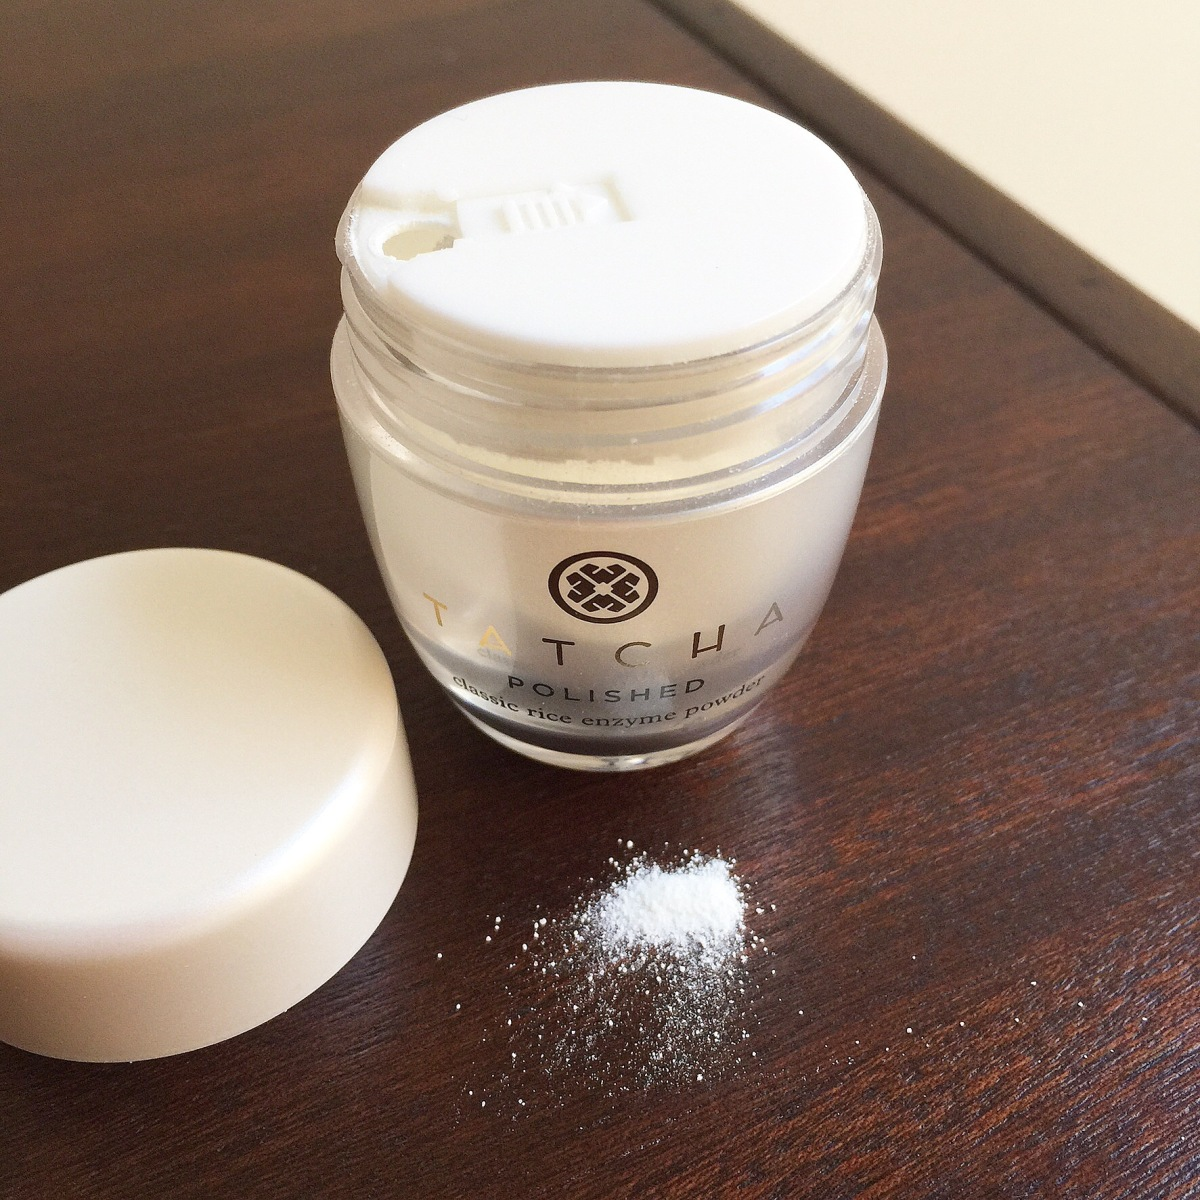 Importados: TATCHA Polished Classic Rice Enzyme Powder